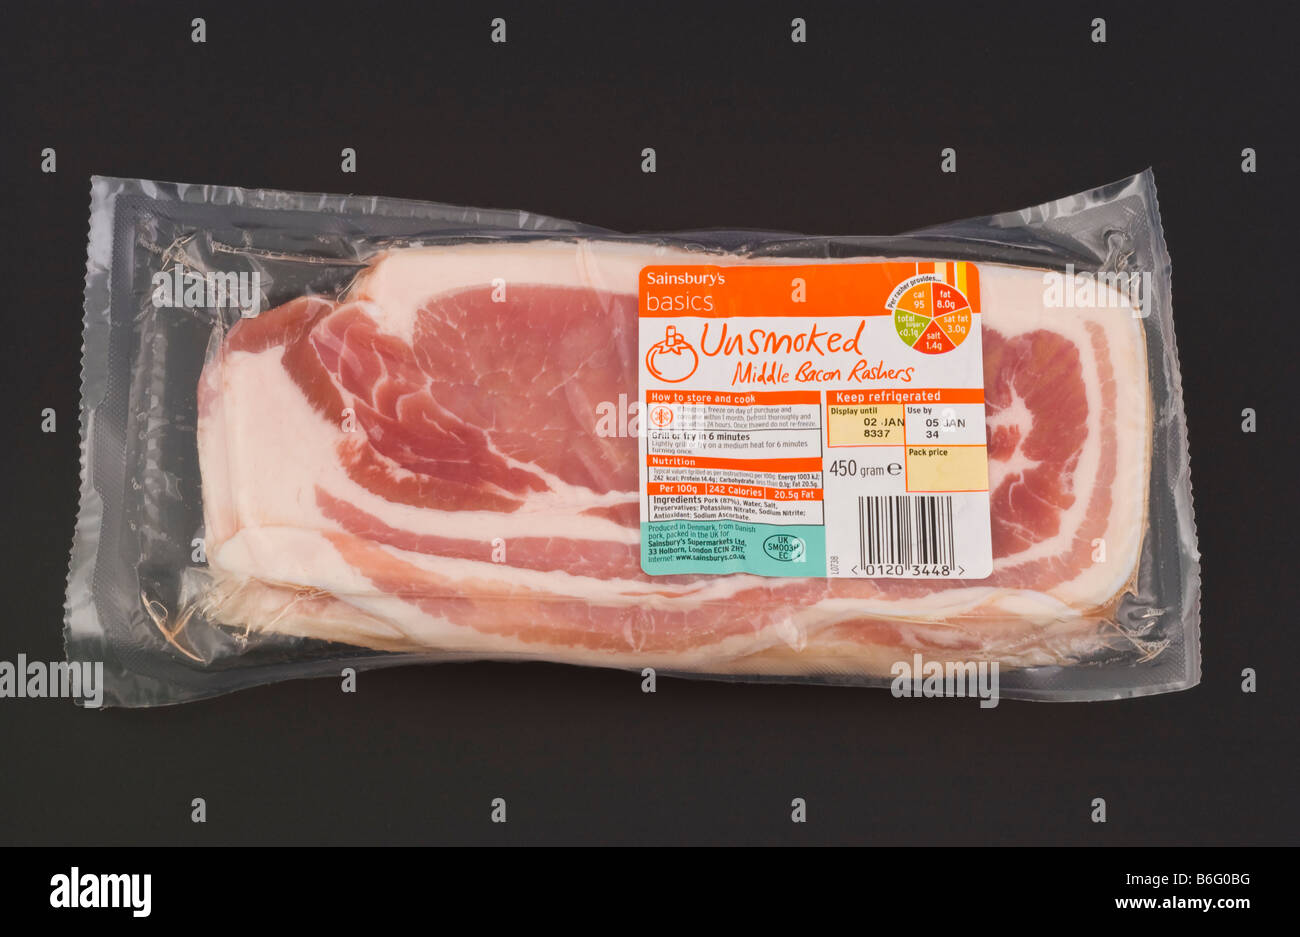 Pack of Sainsburys unsmoked middle bacon rashers part of their Basics sold in the UK - Stock Image